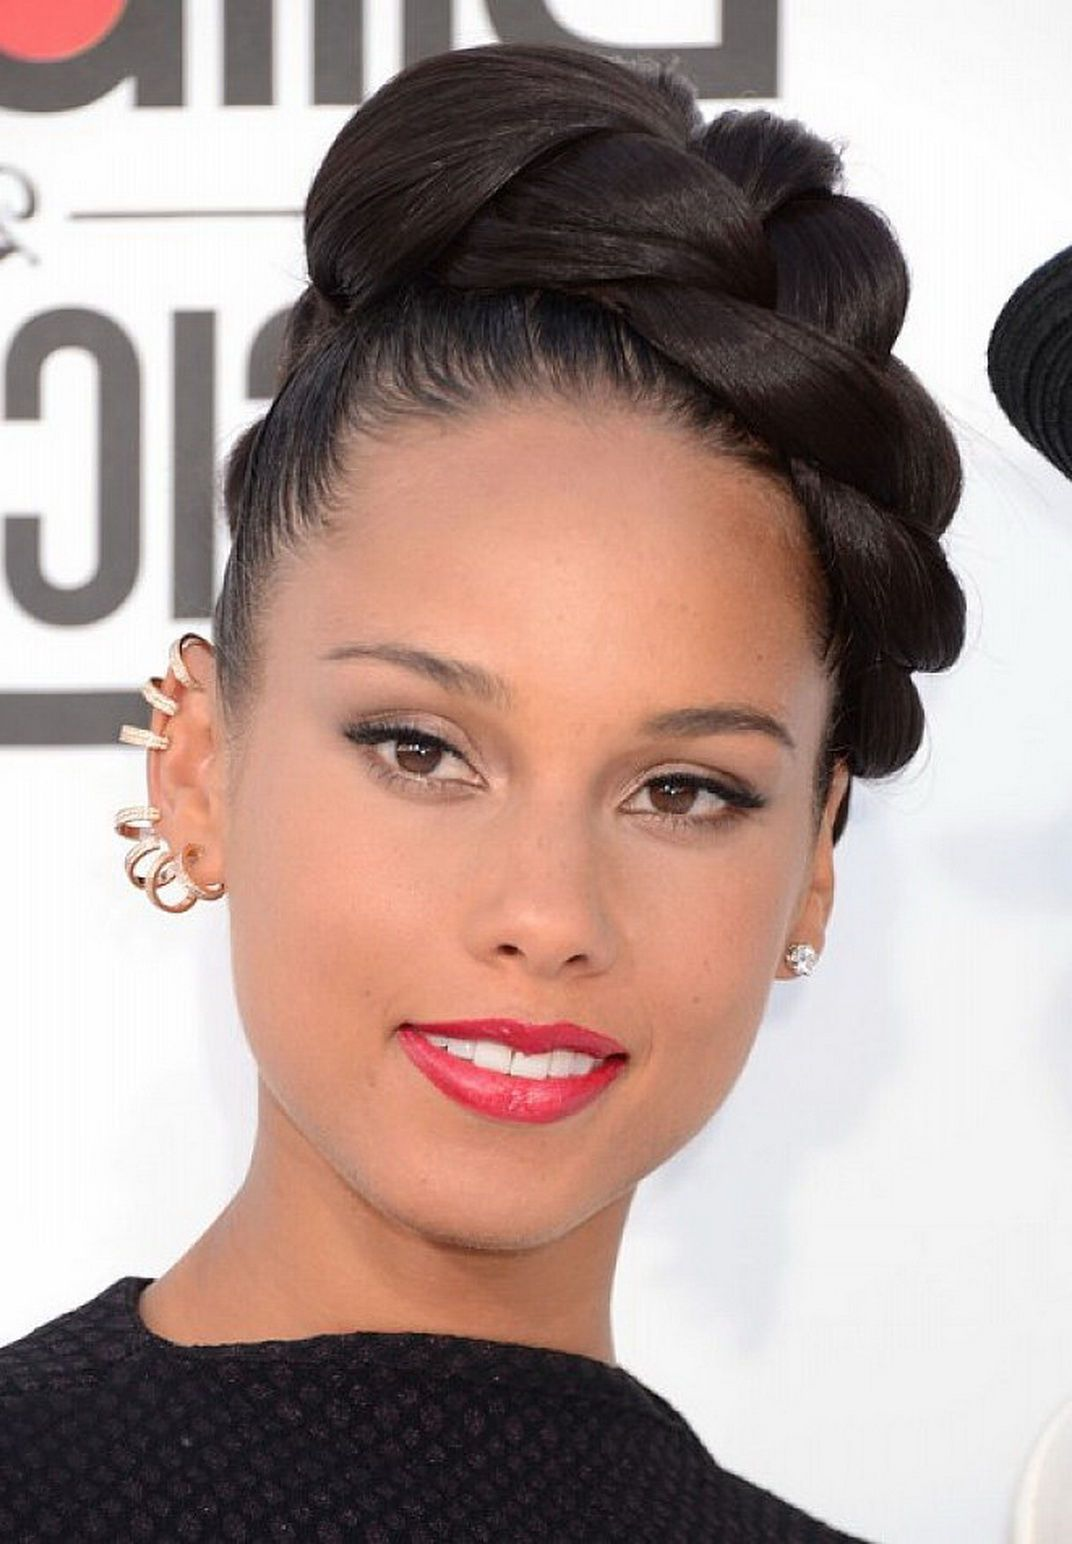 12+ Up do hairstyles for black women trends